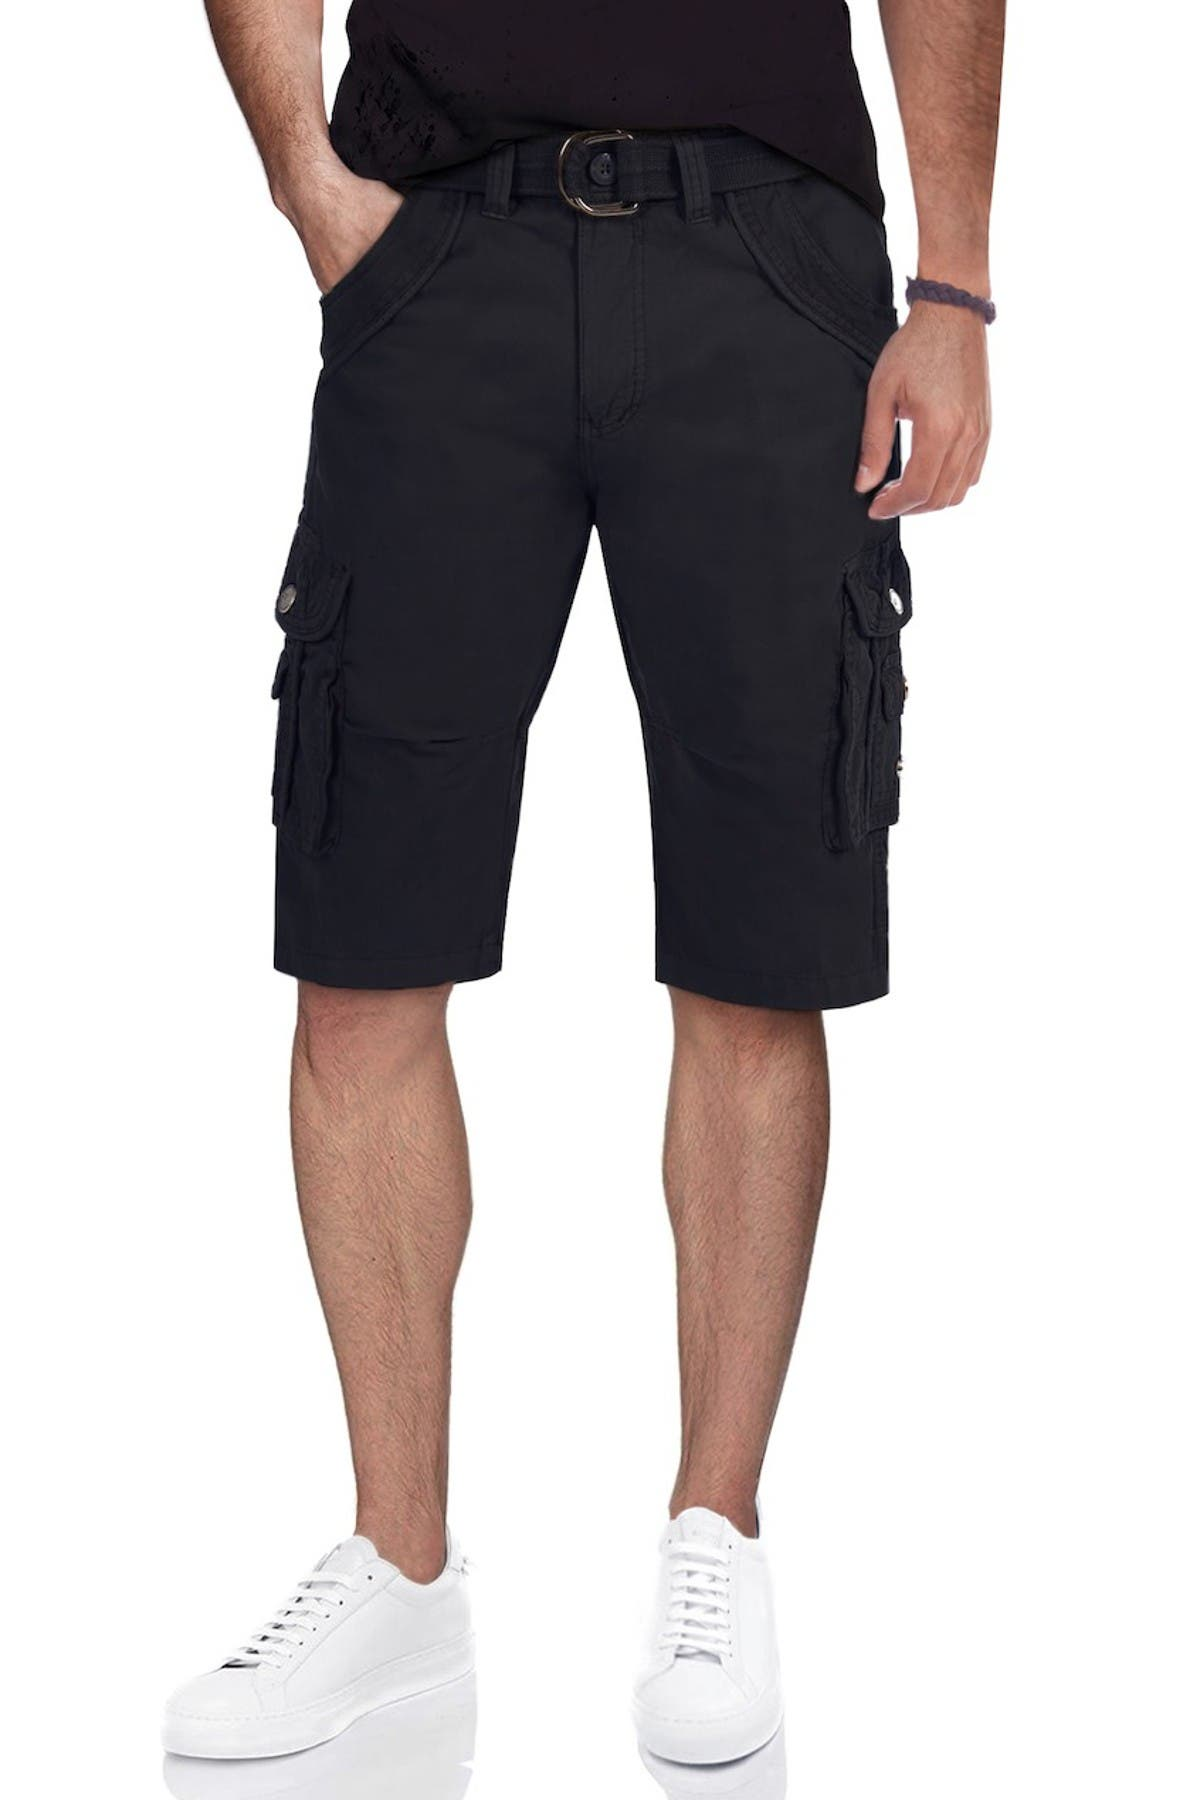 Image of XRAY Belted Double Pocket Cargo Shorts